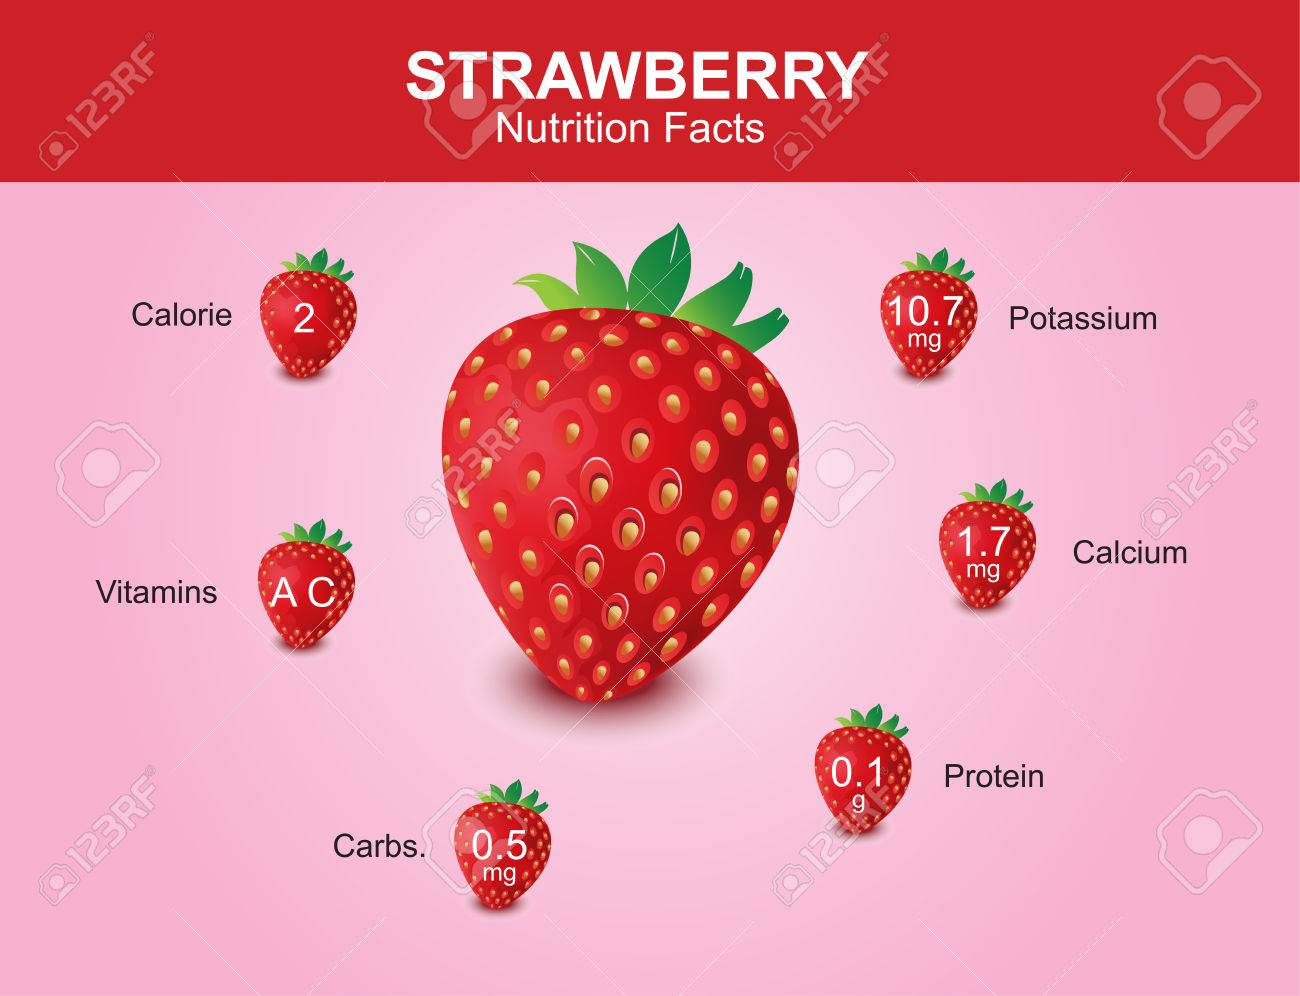 Strawberry Nutrition Facts Strawberry Fruit With Information Royalty Free Cliparts Vectors And Stock Illustration Image 40968334